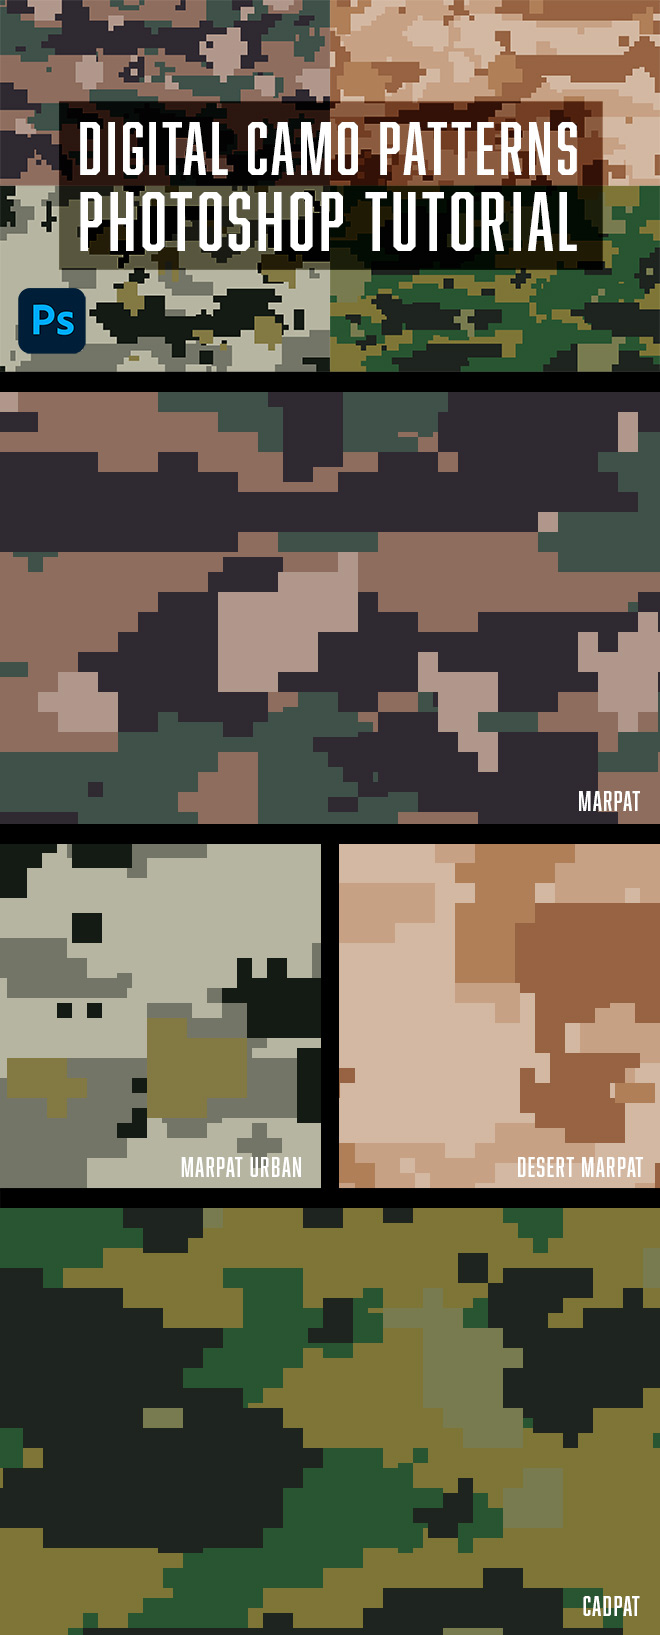 How to Make Digital Camo Patterns in Photoshop